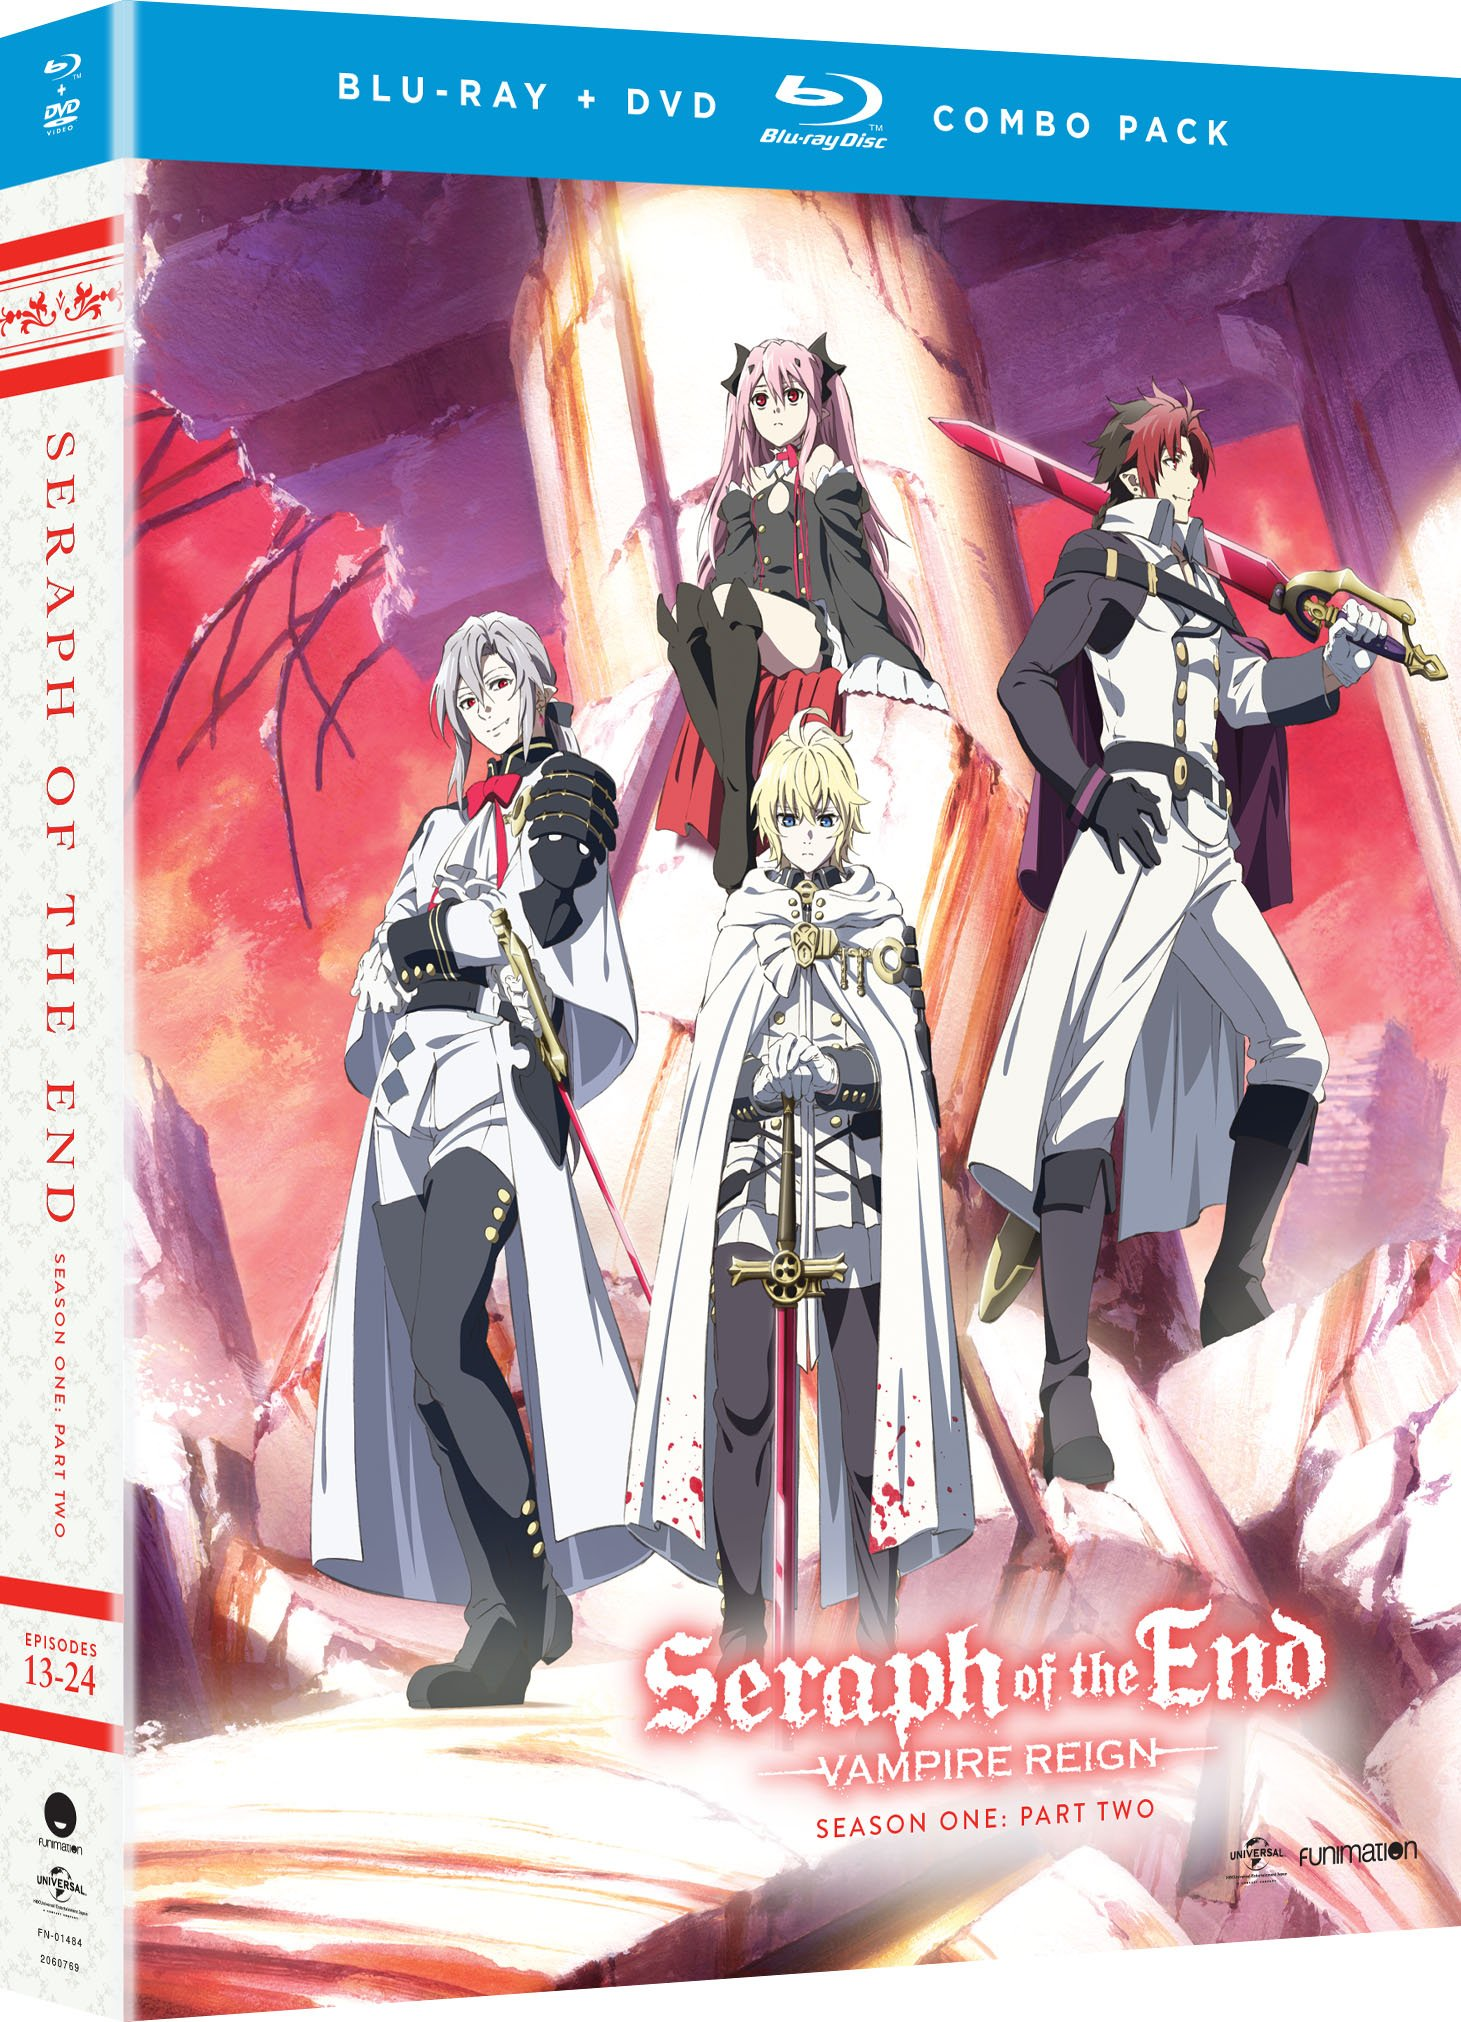 Blu-ray : Seraph Of The End: Vampire Reign - Season One Part Two (With DVD, Boxed Set, 4 Disc)